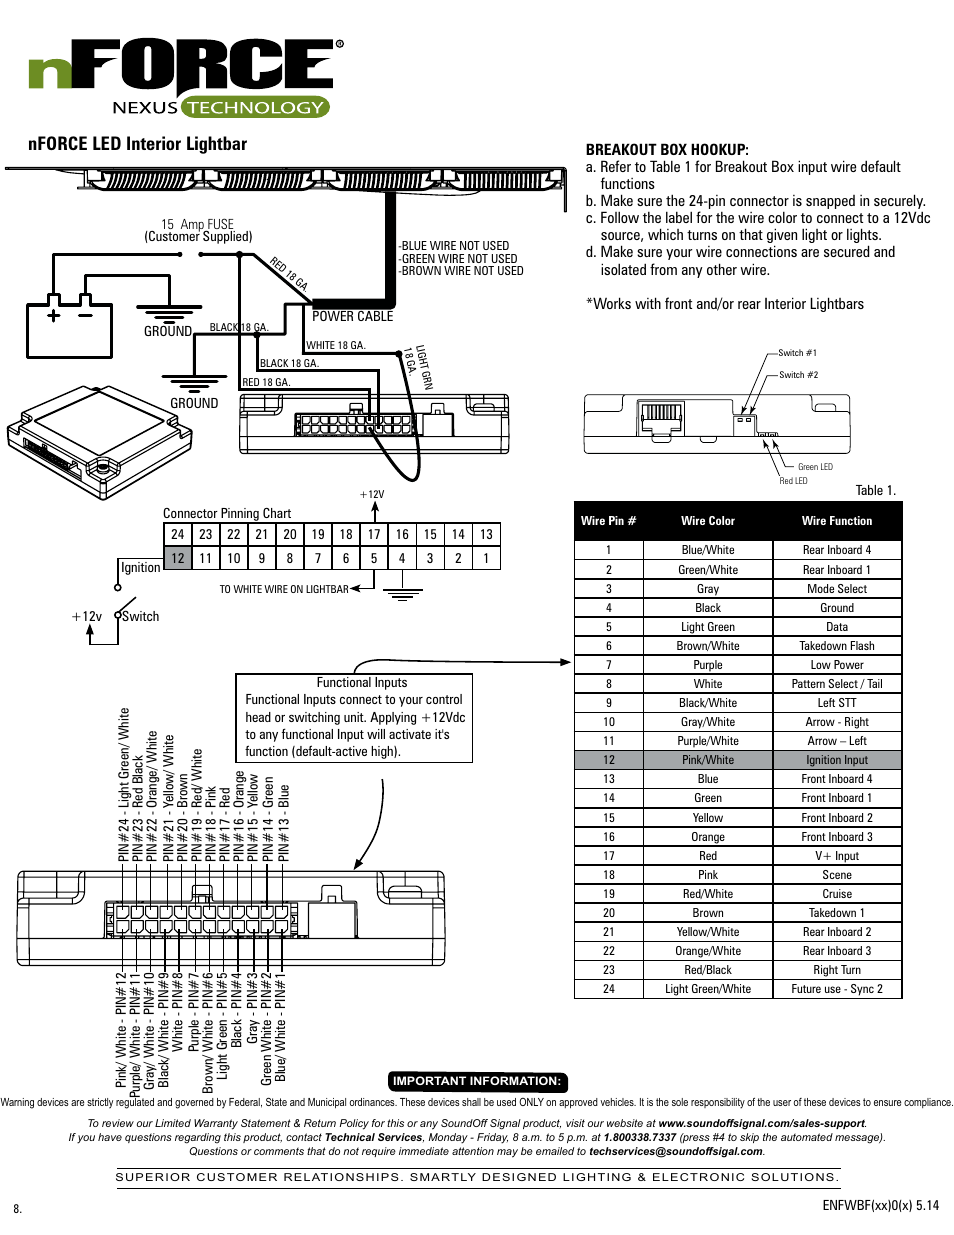 Soundoff Etda380r Wiring Diagram